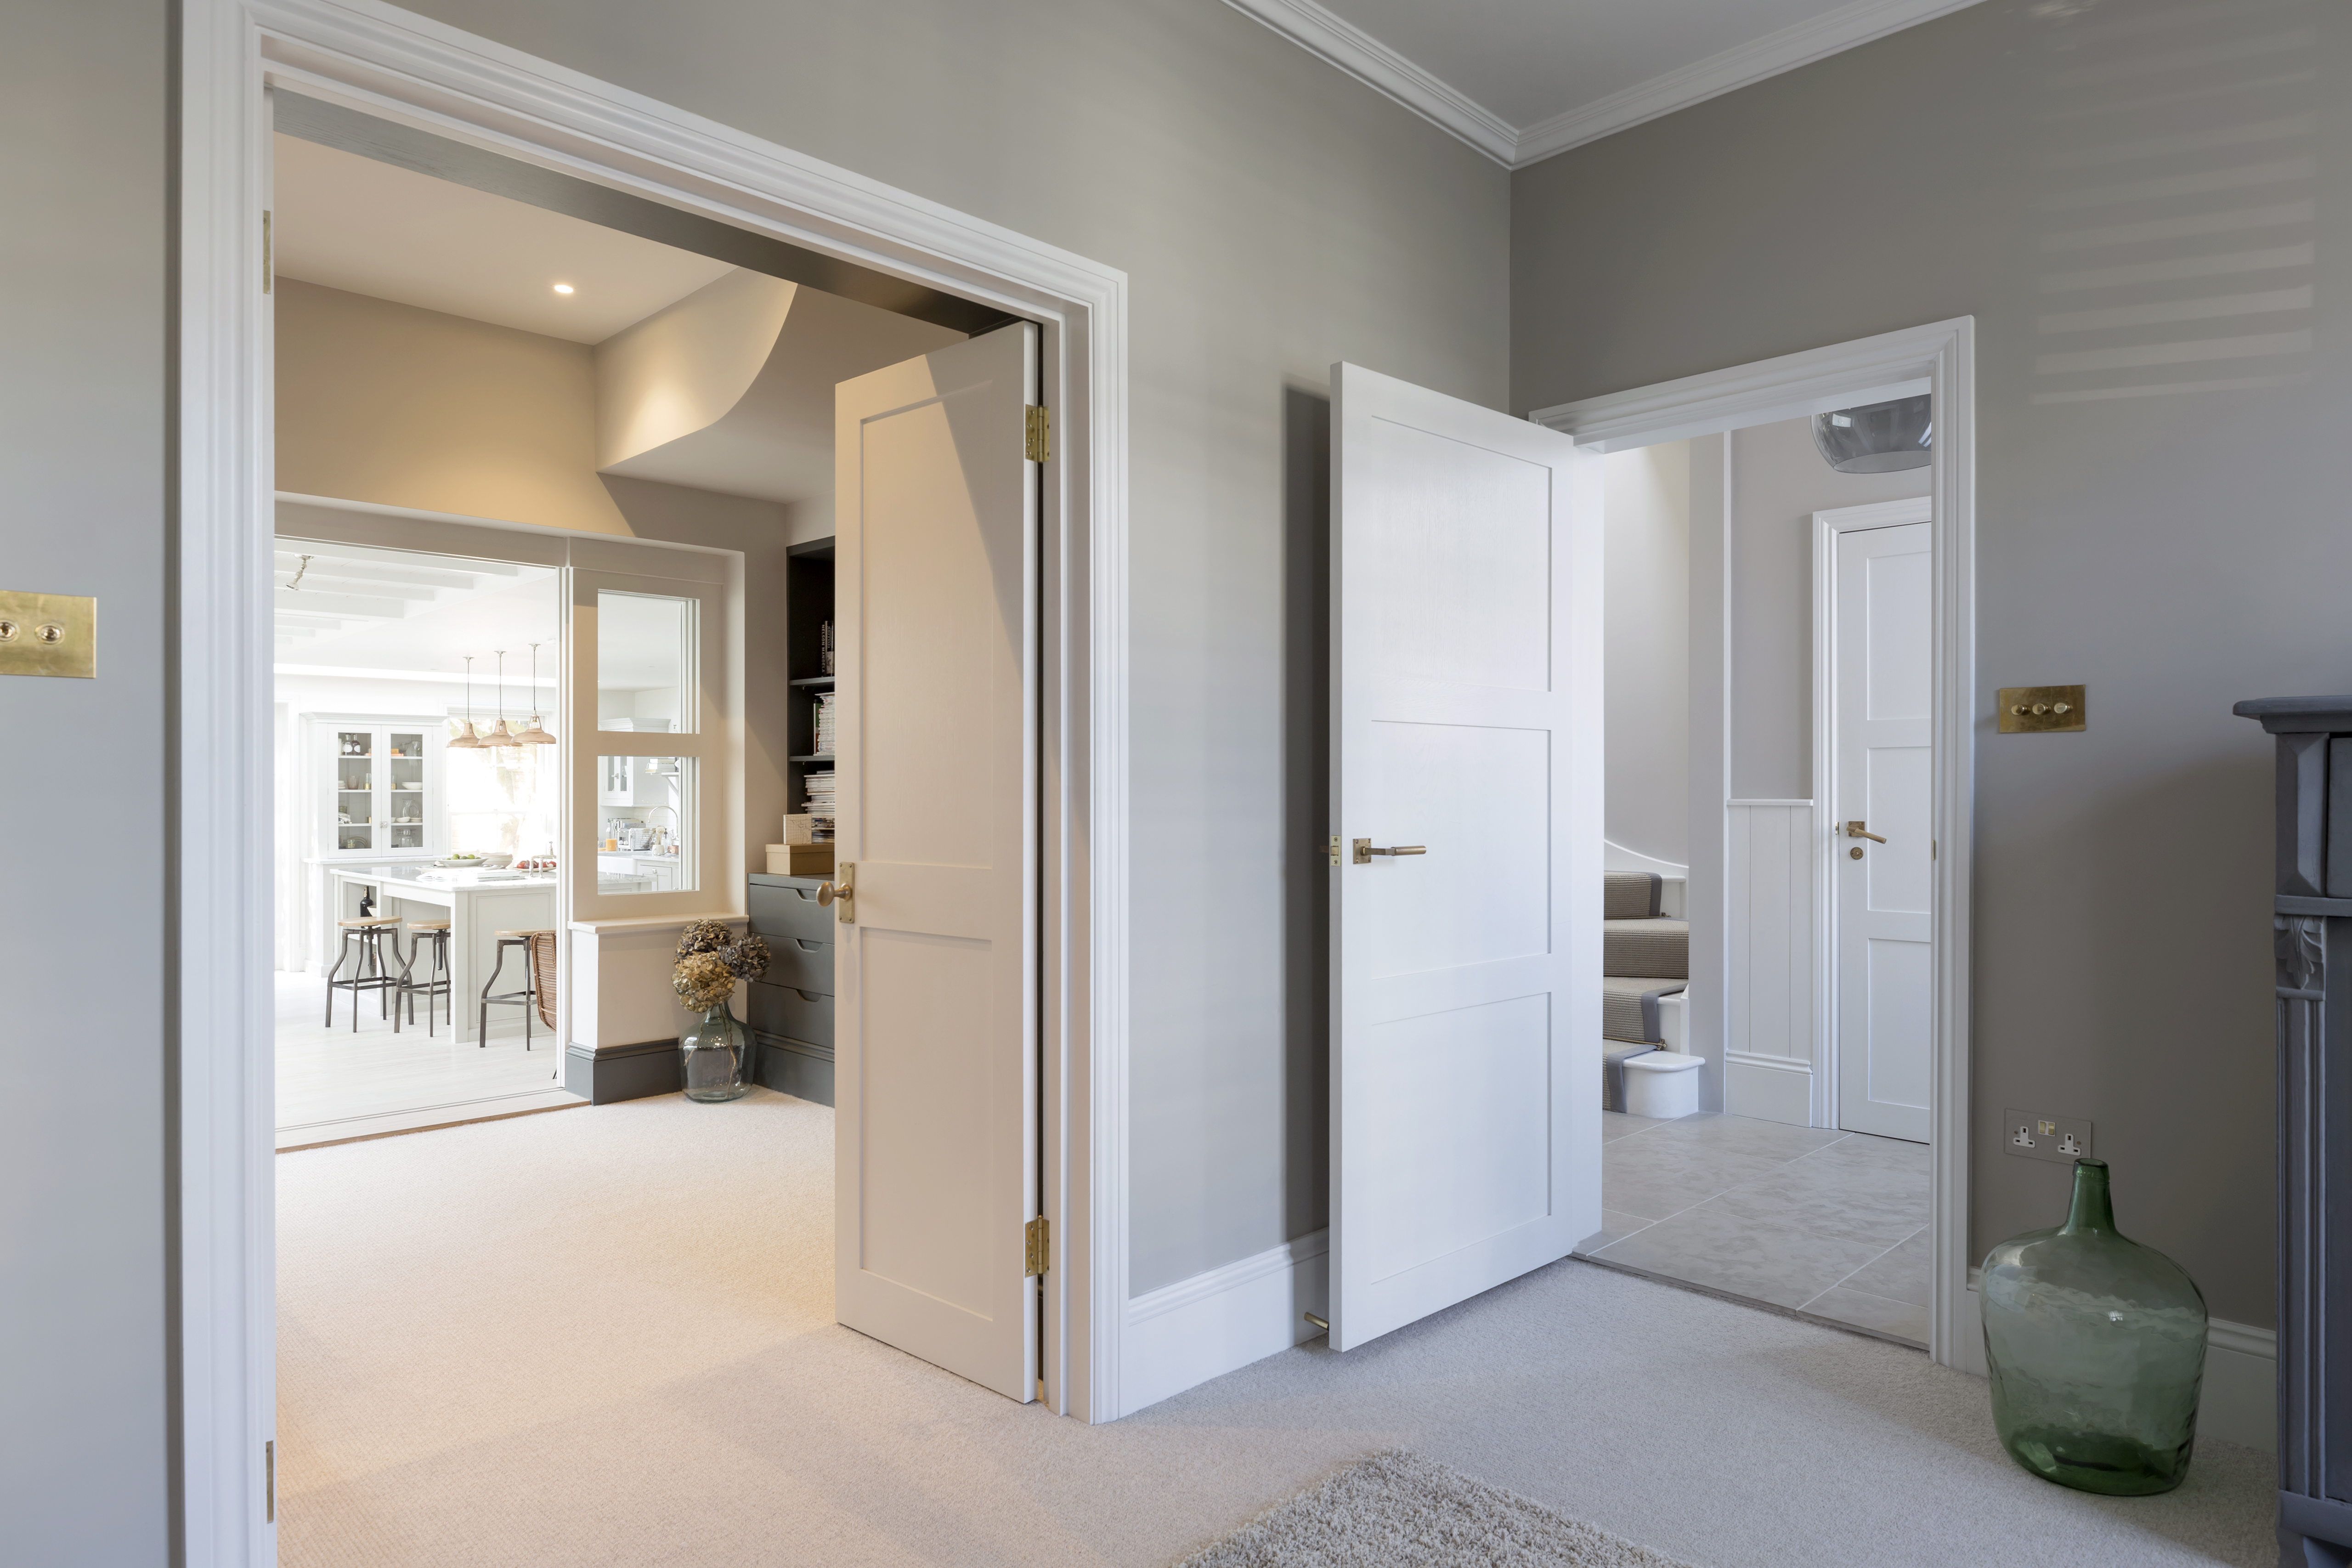 Feng Shui Home Design feng shui challenges in a house with many doors | lovetoknow